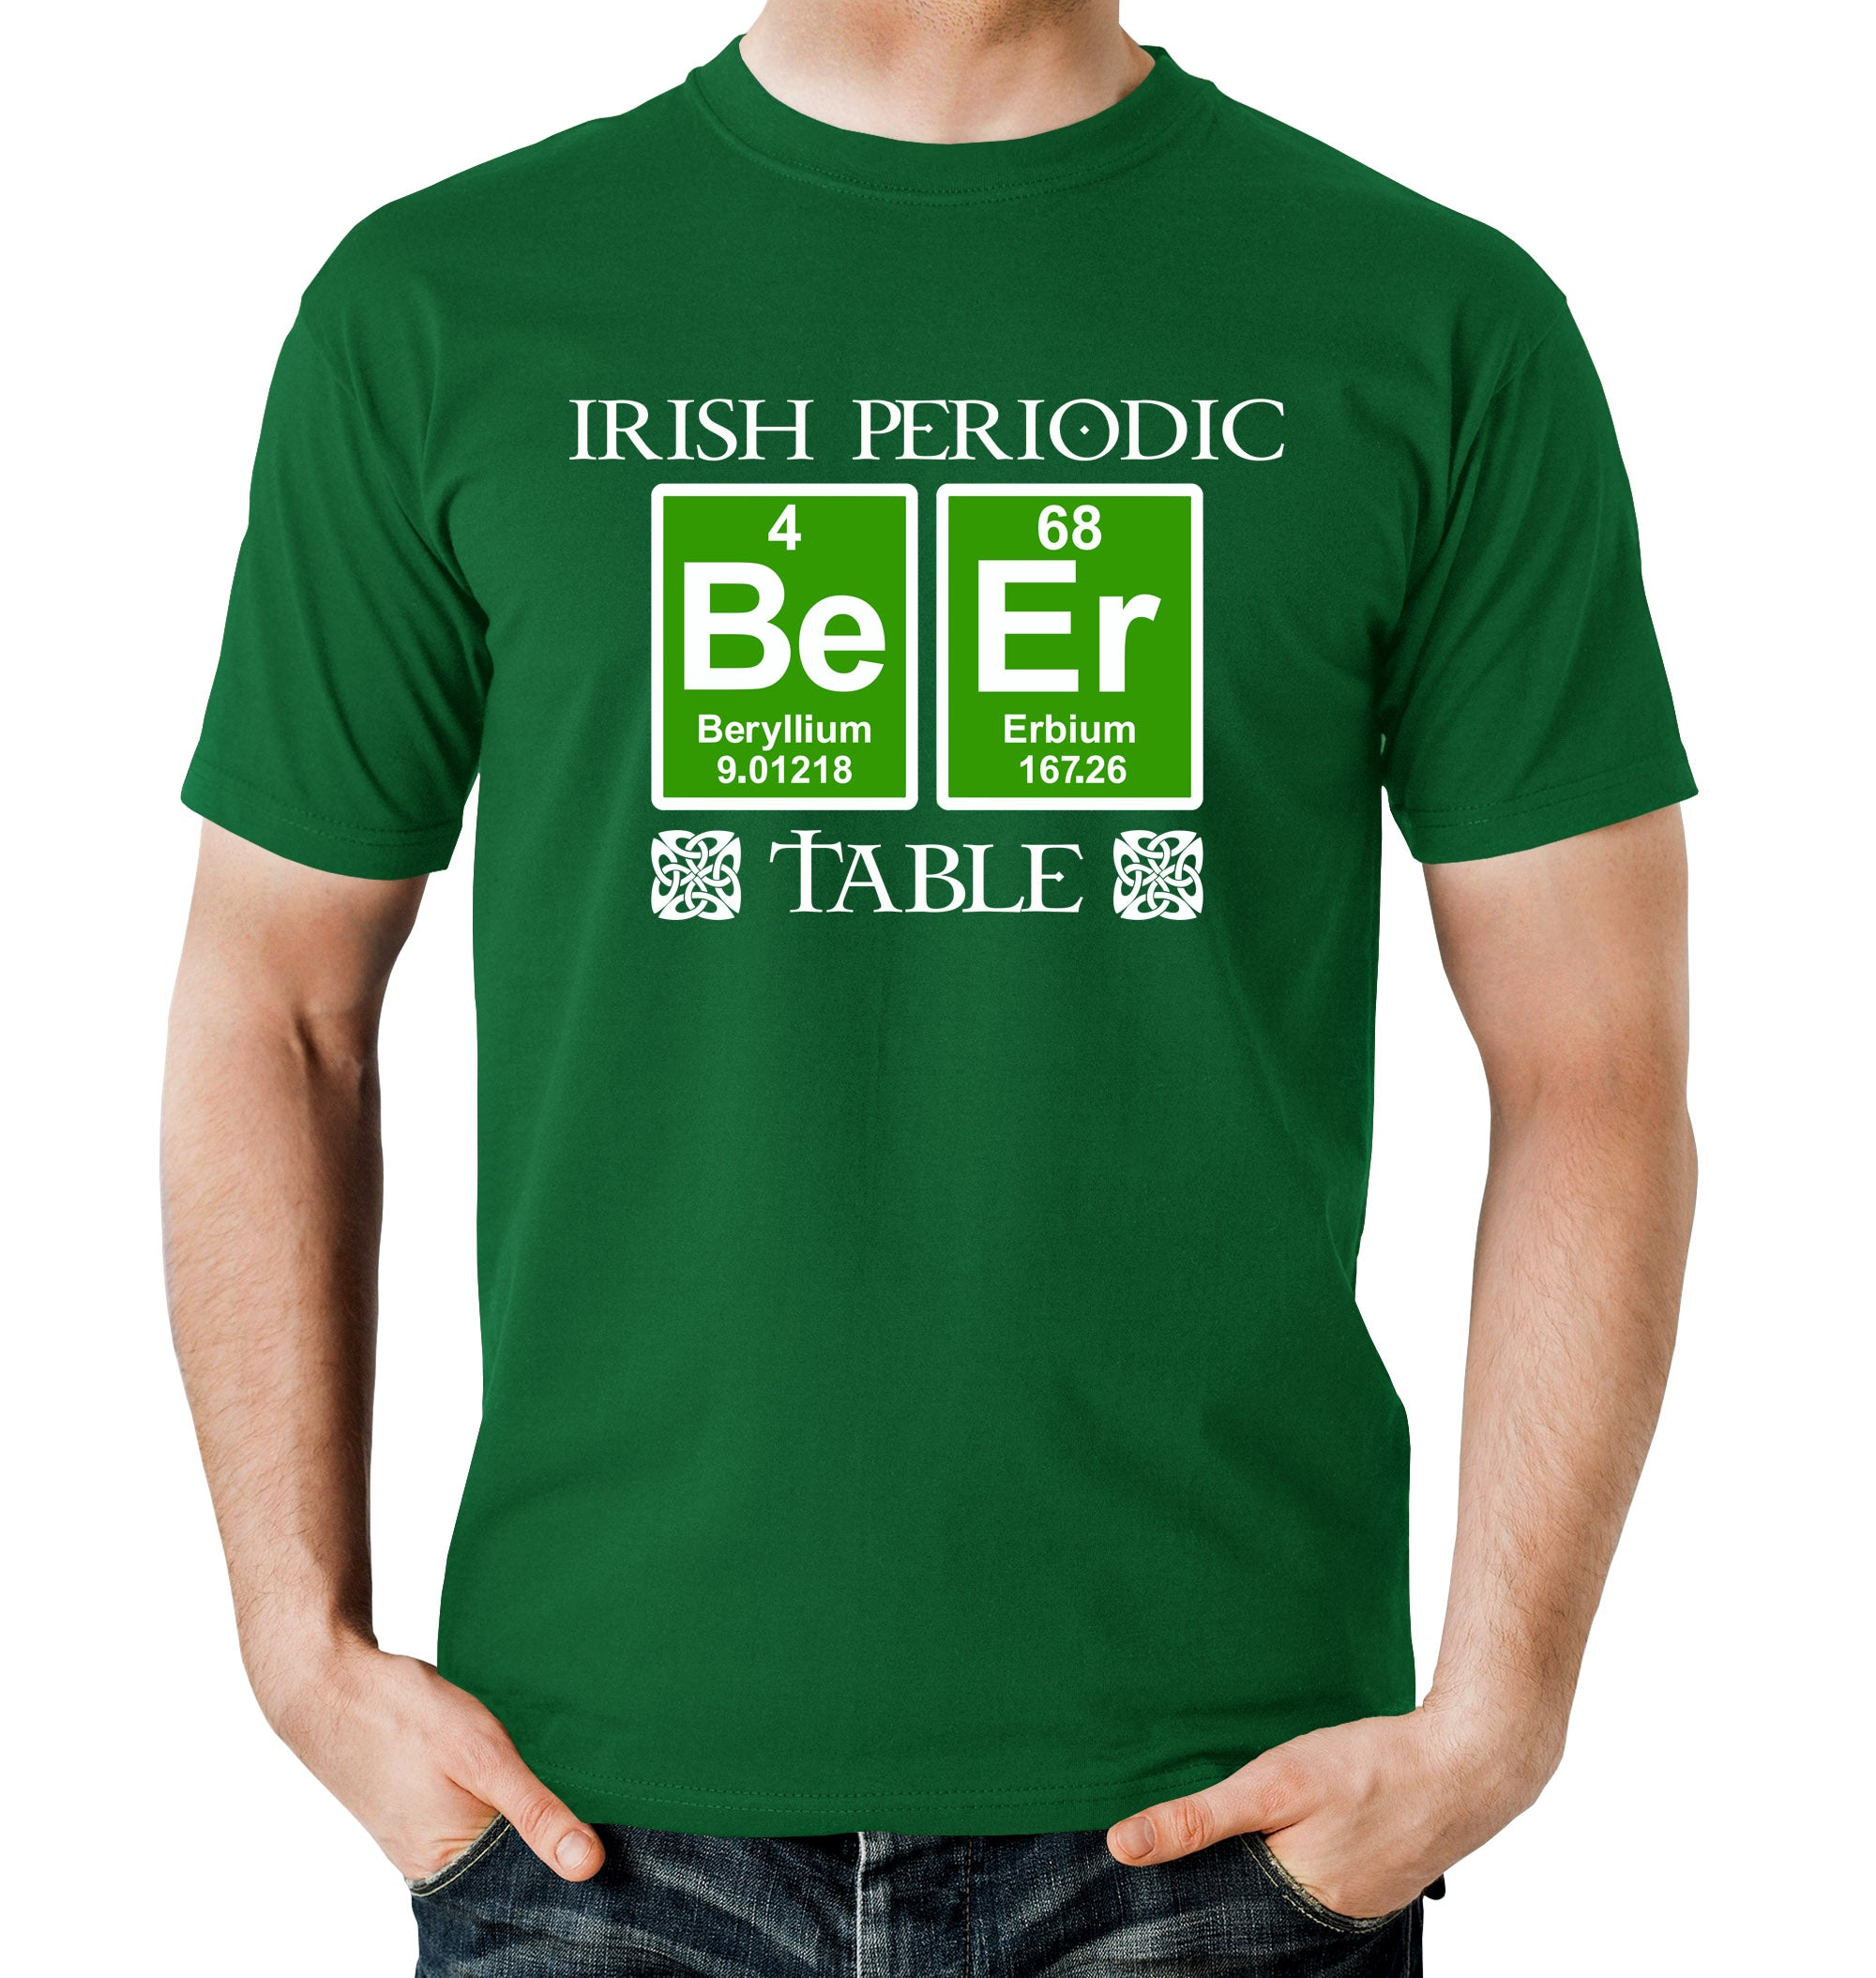 Irish Periodic Table St. Paddy's Day T-Shirt on Model